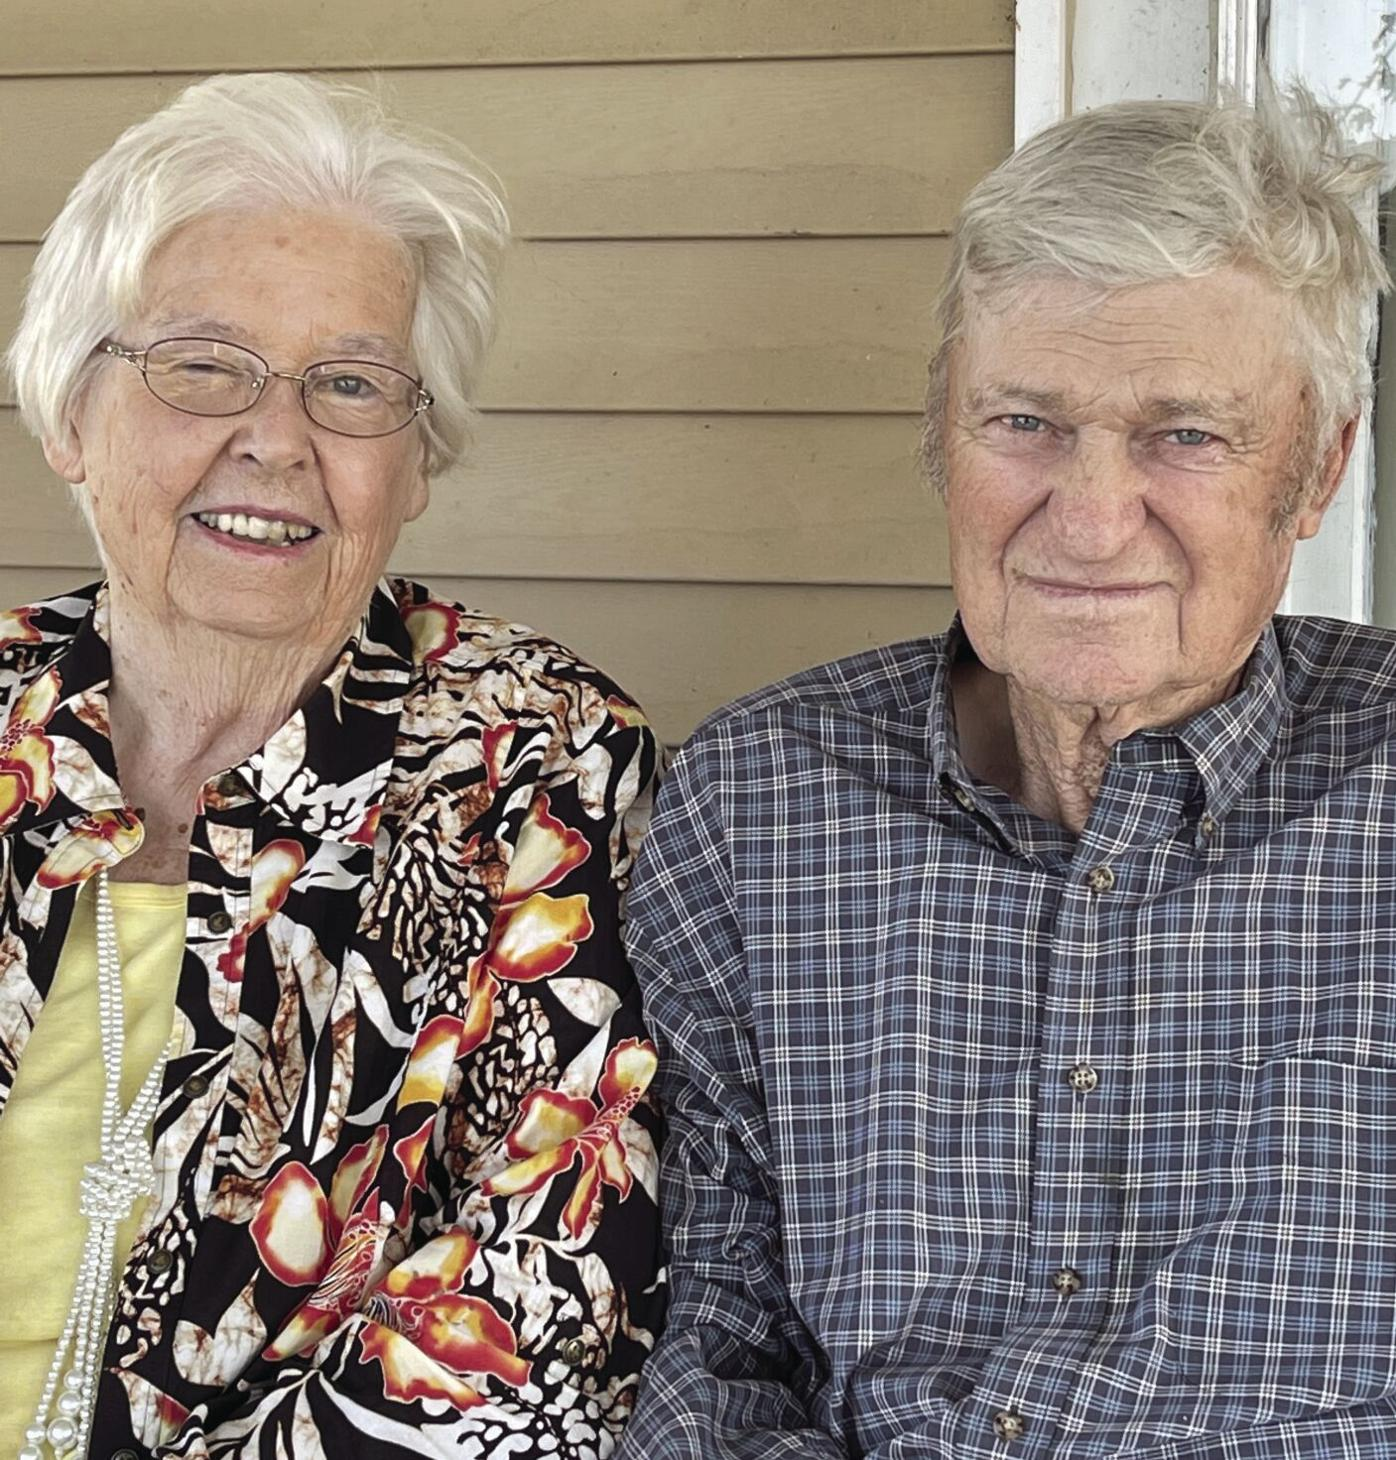 Married 60 years: Wayne and Evelyn Shelor